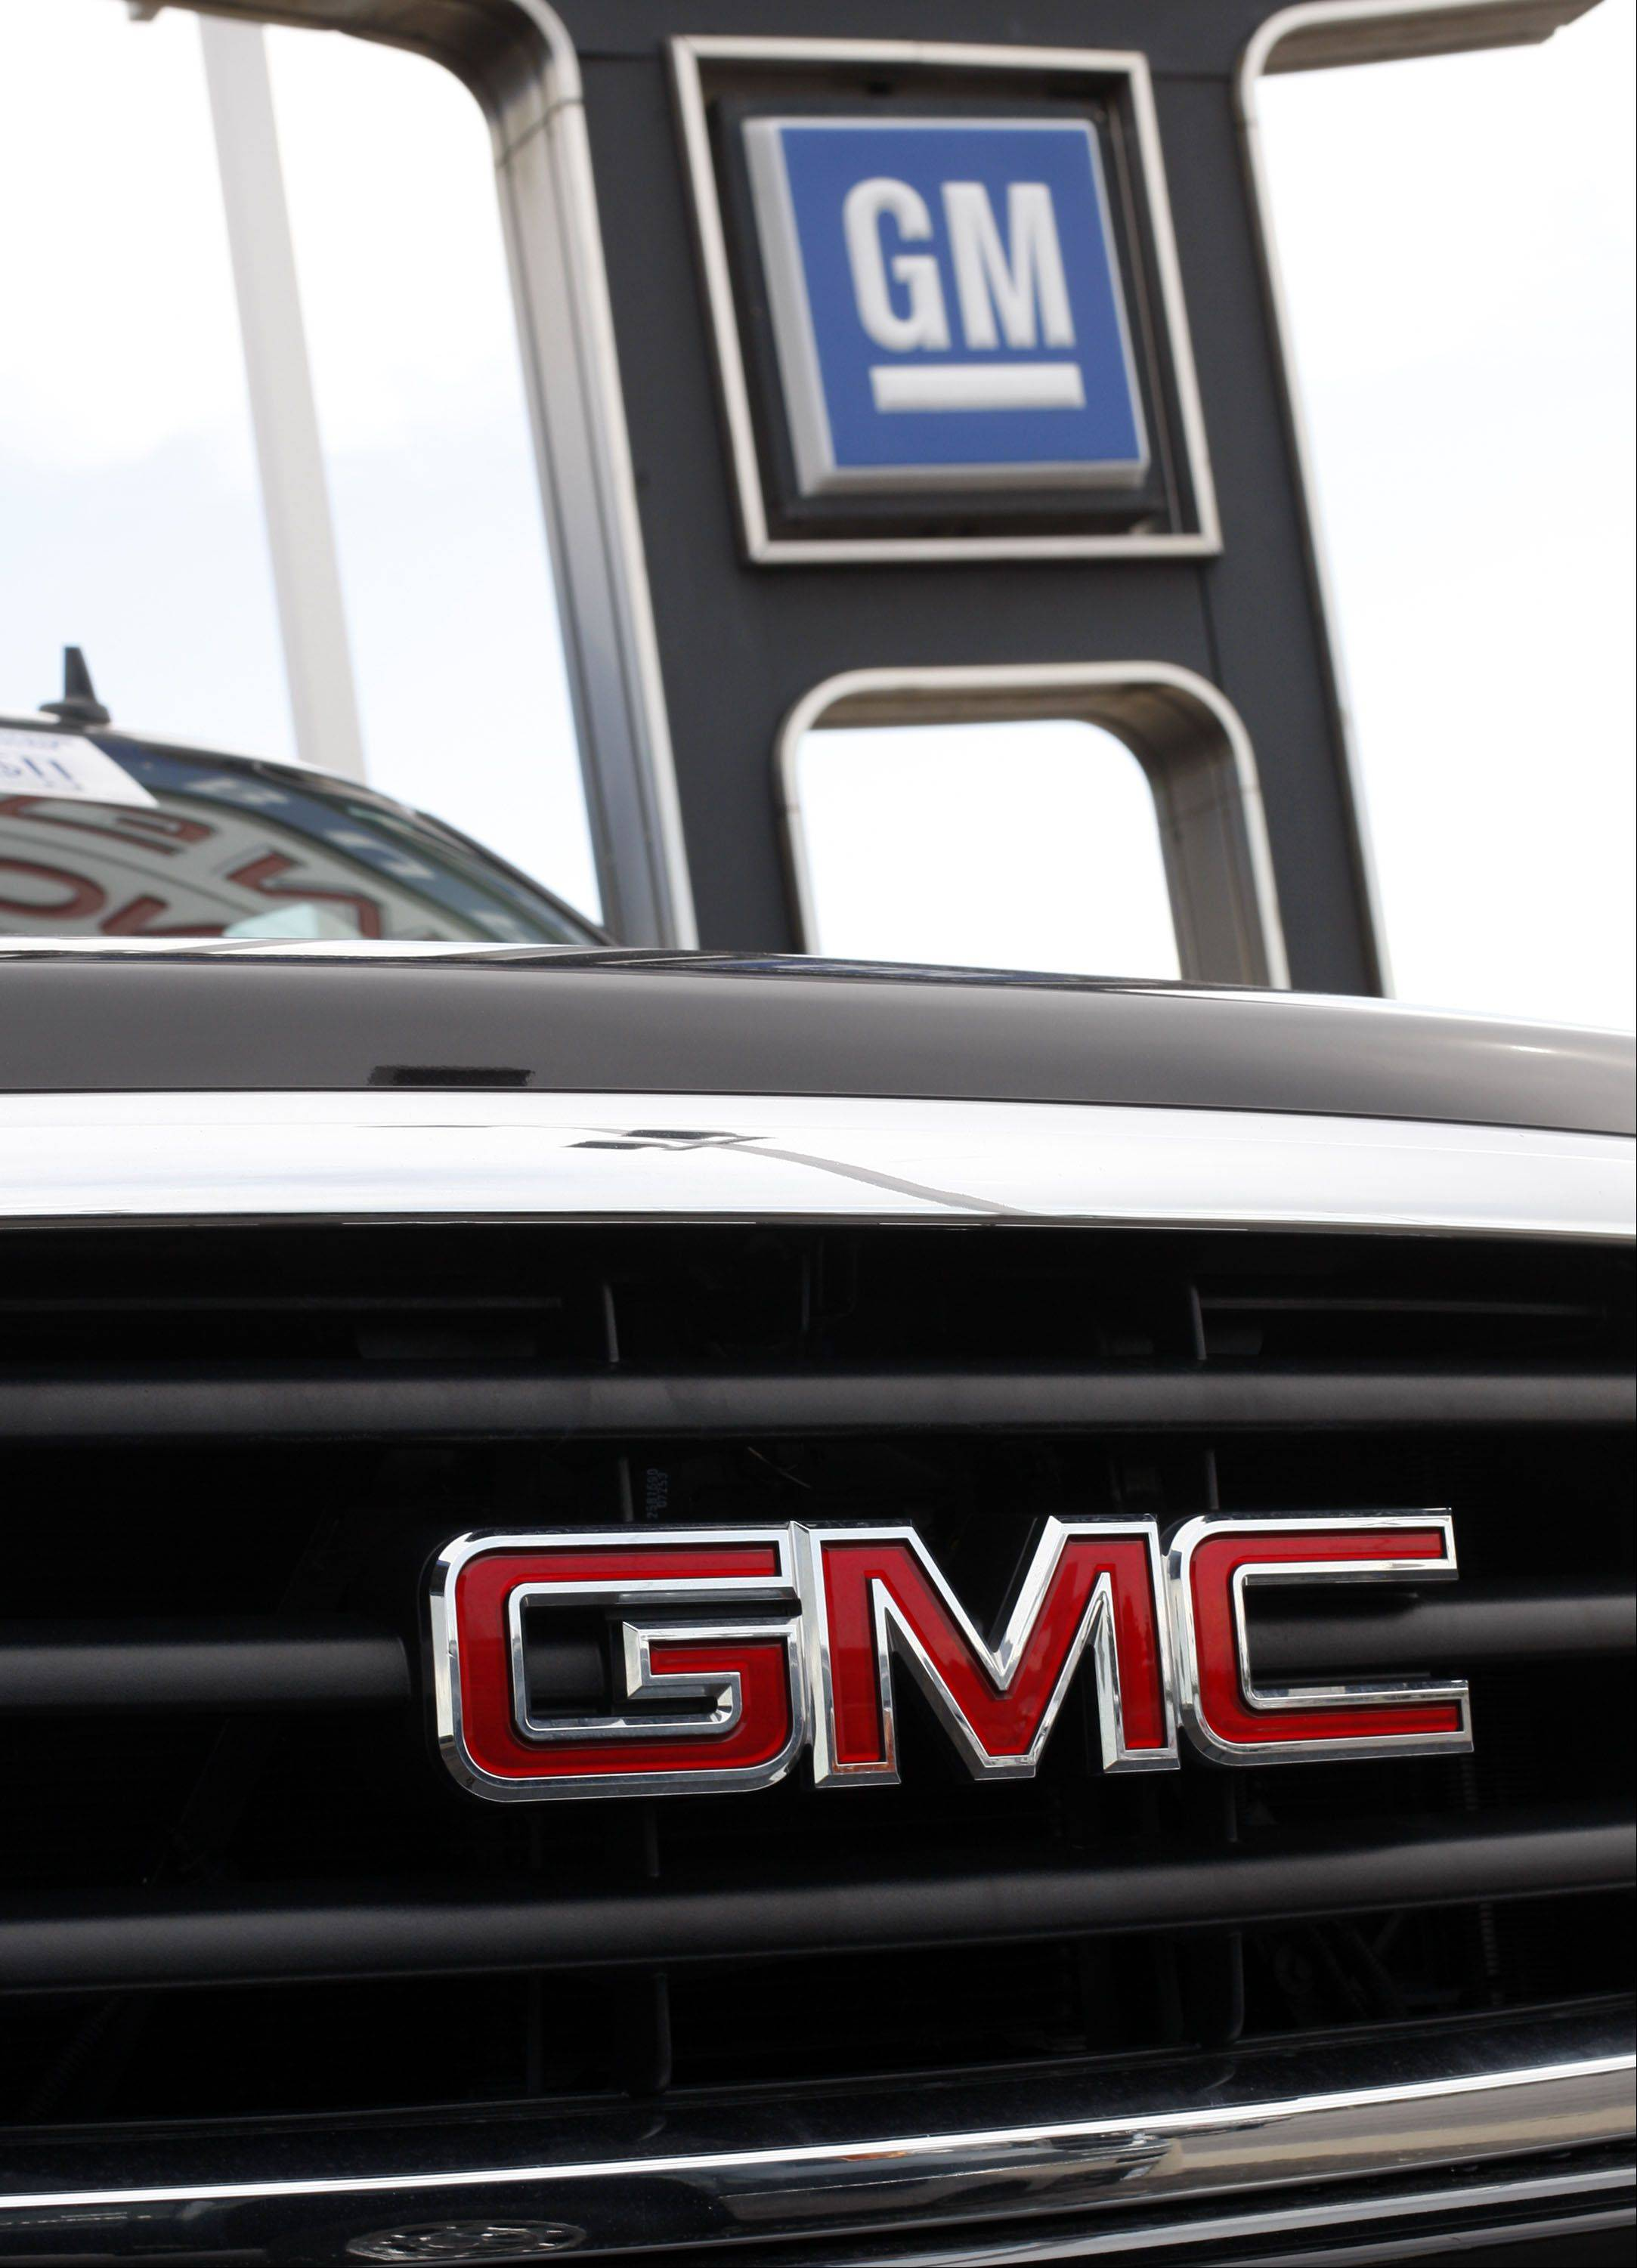 General Motors said its head of marketing, who decided to end advertising on Facebook and the Super Bowl, resigned as the automaker's U.S. market share declines.